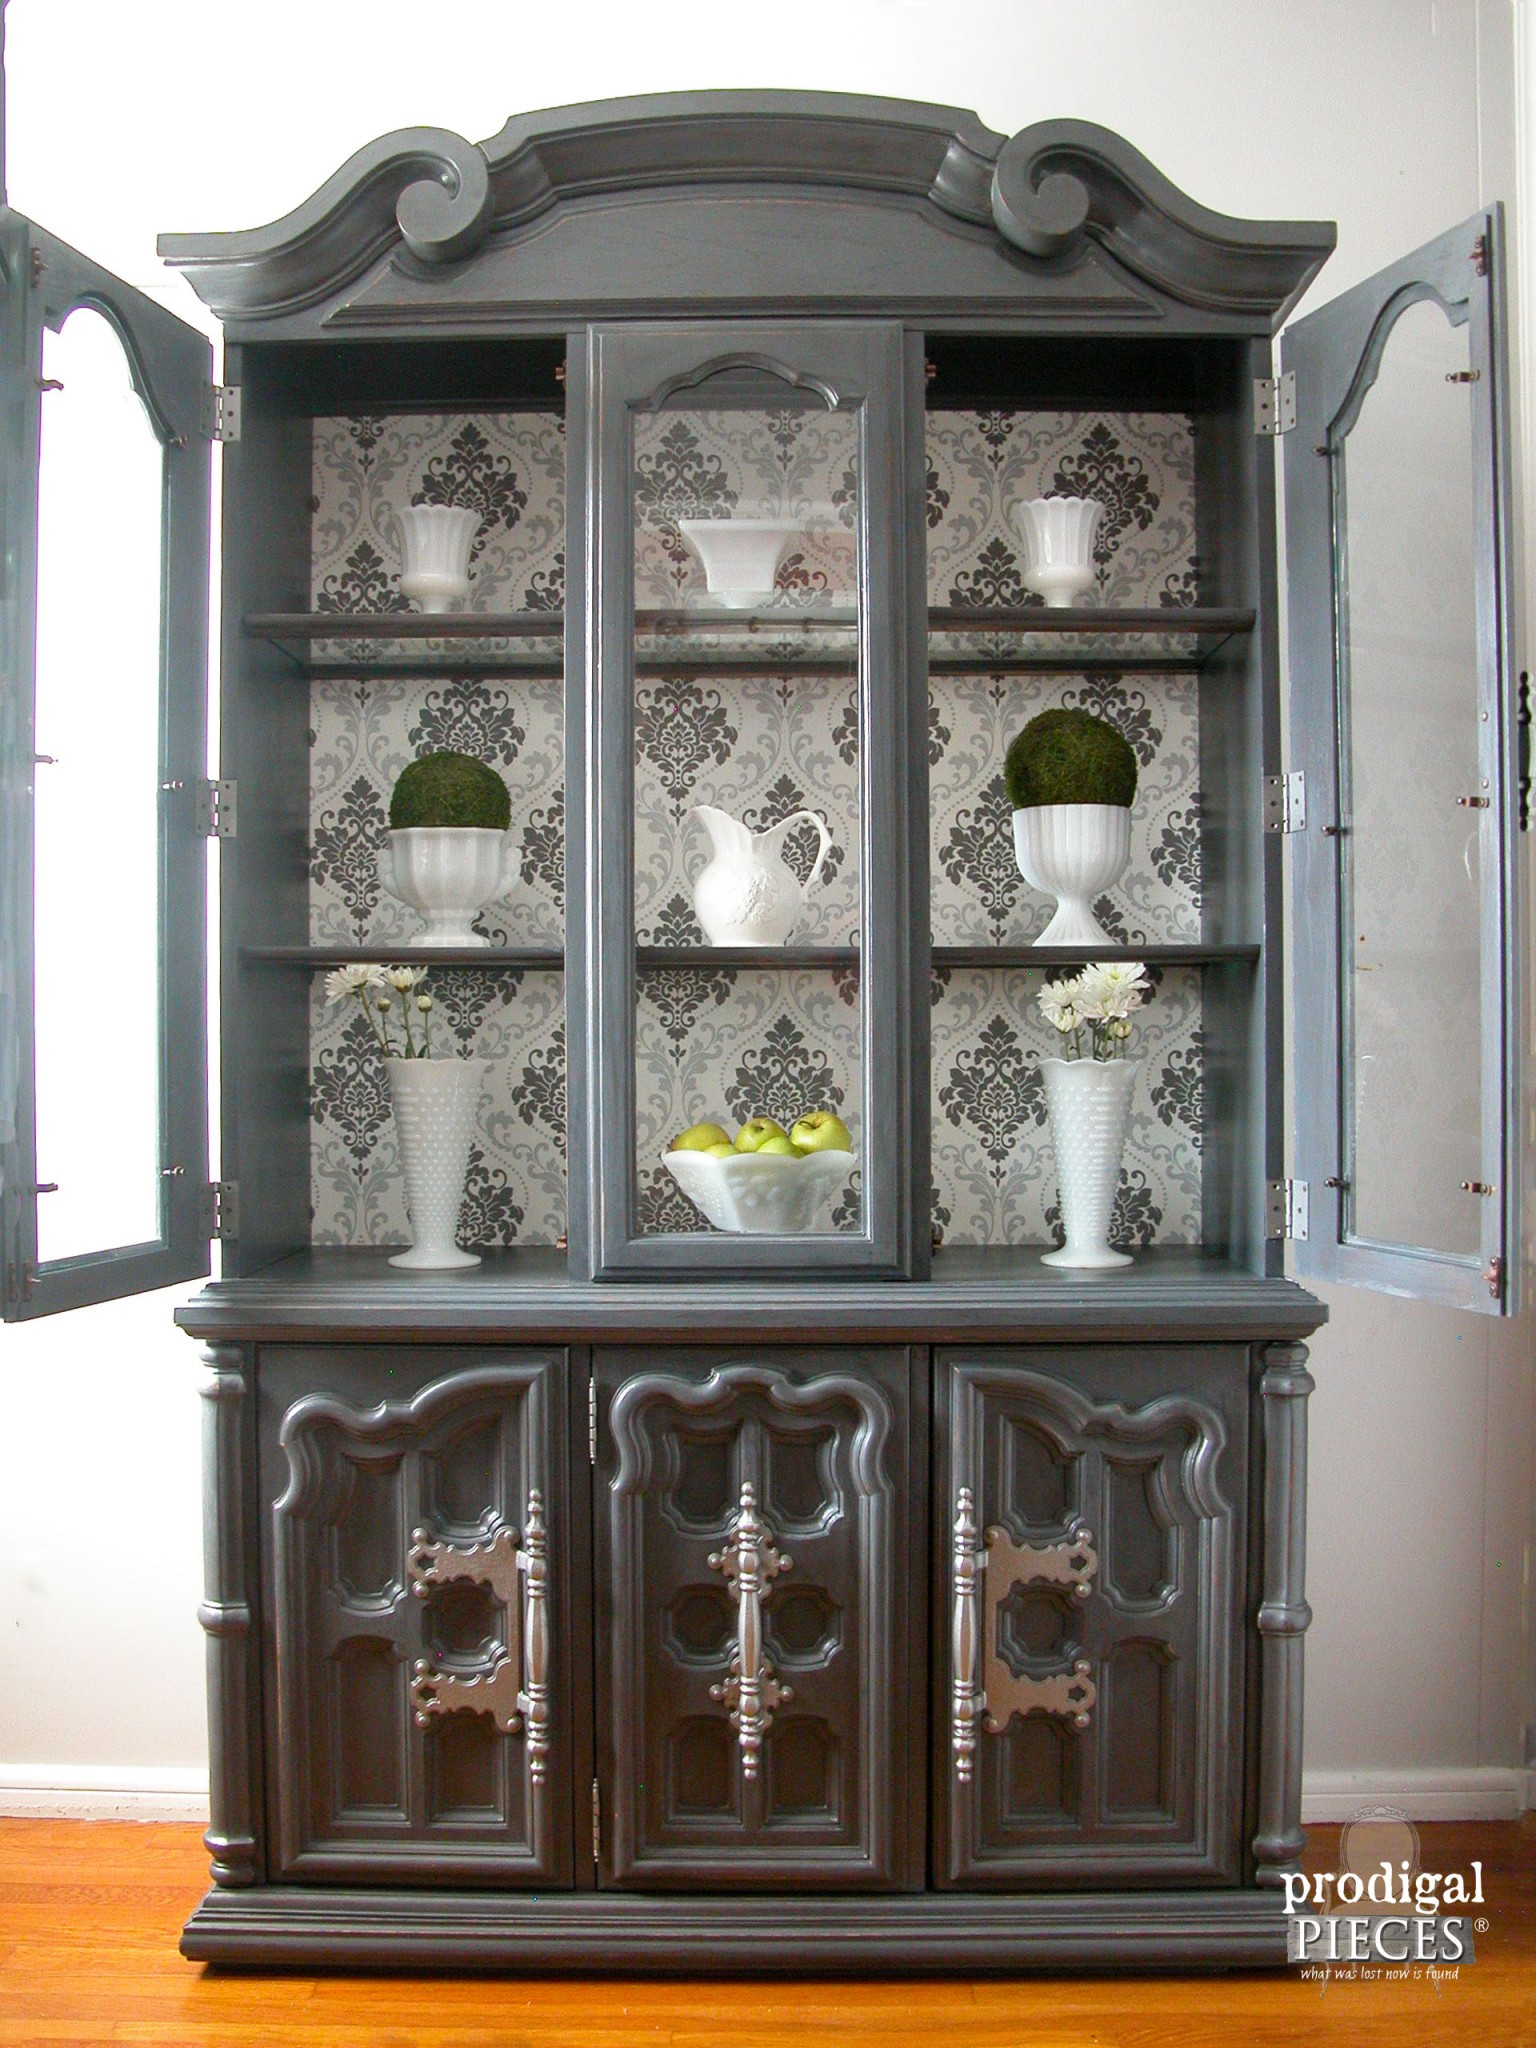 Open Display Of Wallpapered China Cabinet By Prodigal Pieces |  Www.prodigalpieces.com